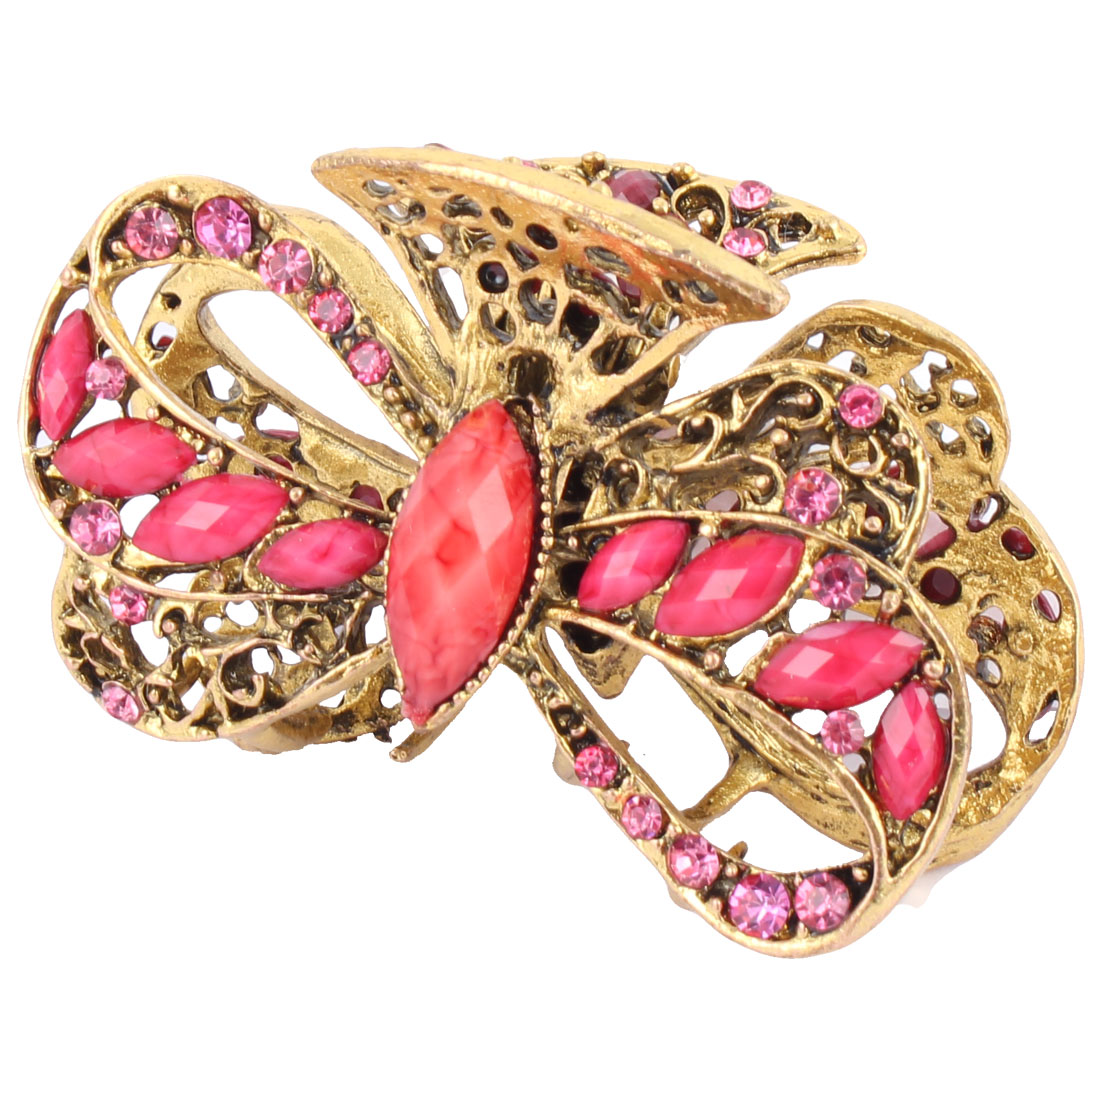 Woman Faux Rhinestone Decor Hollow Out Claw Hairstyle Hair Clip Barrette Pink